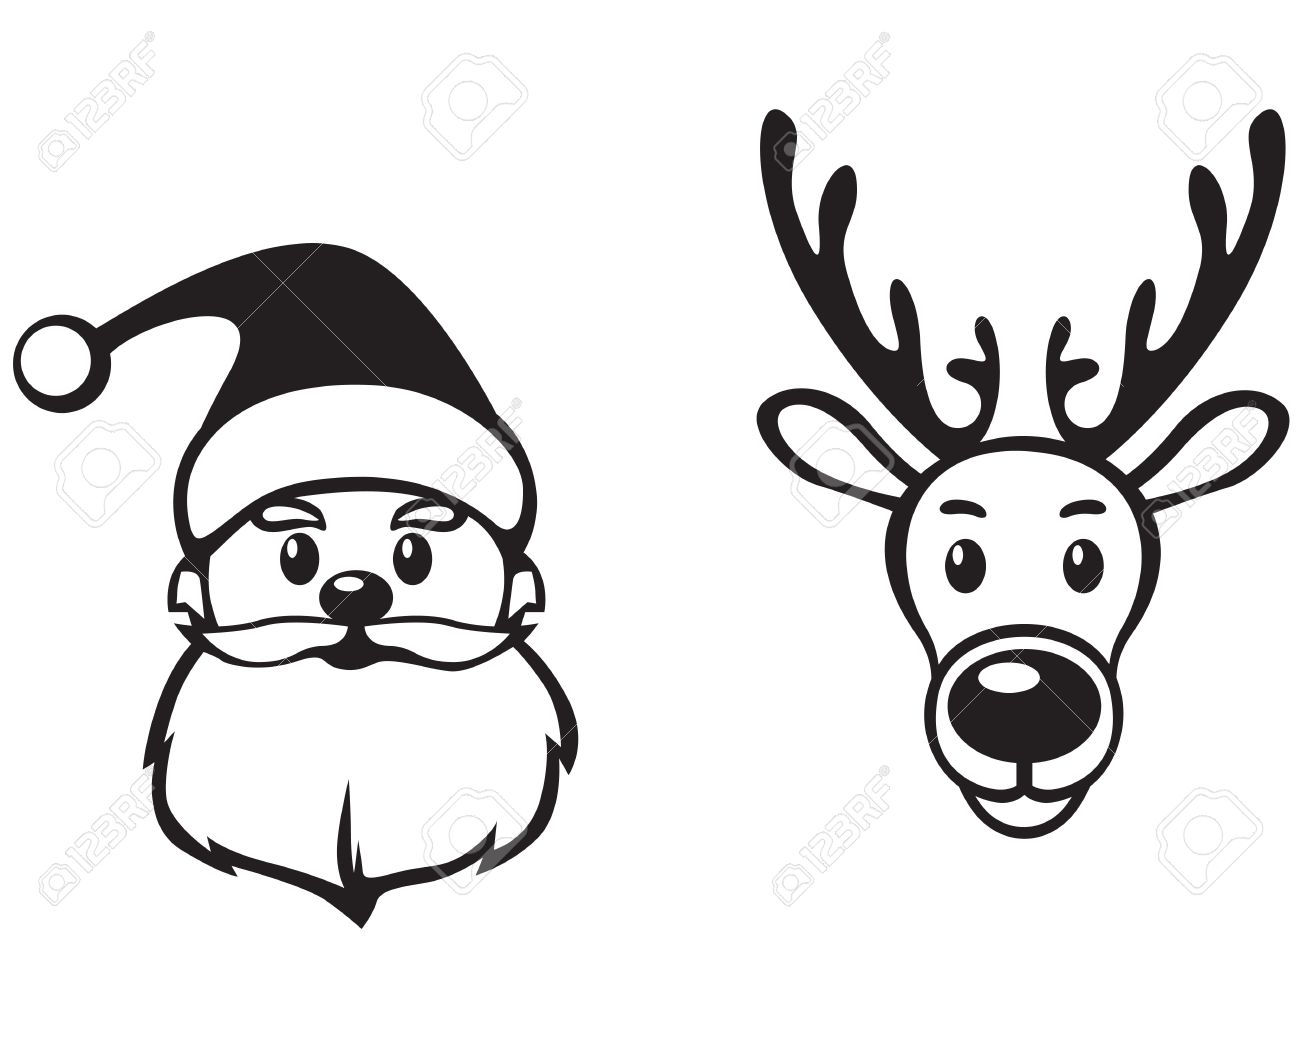 Rudolph Face Clipart Black And White.